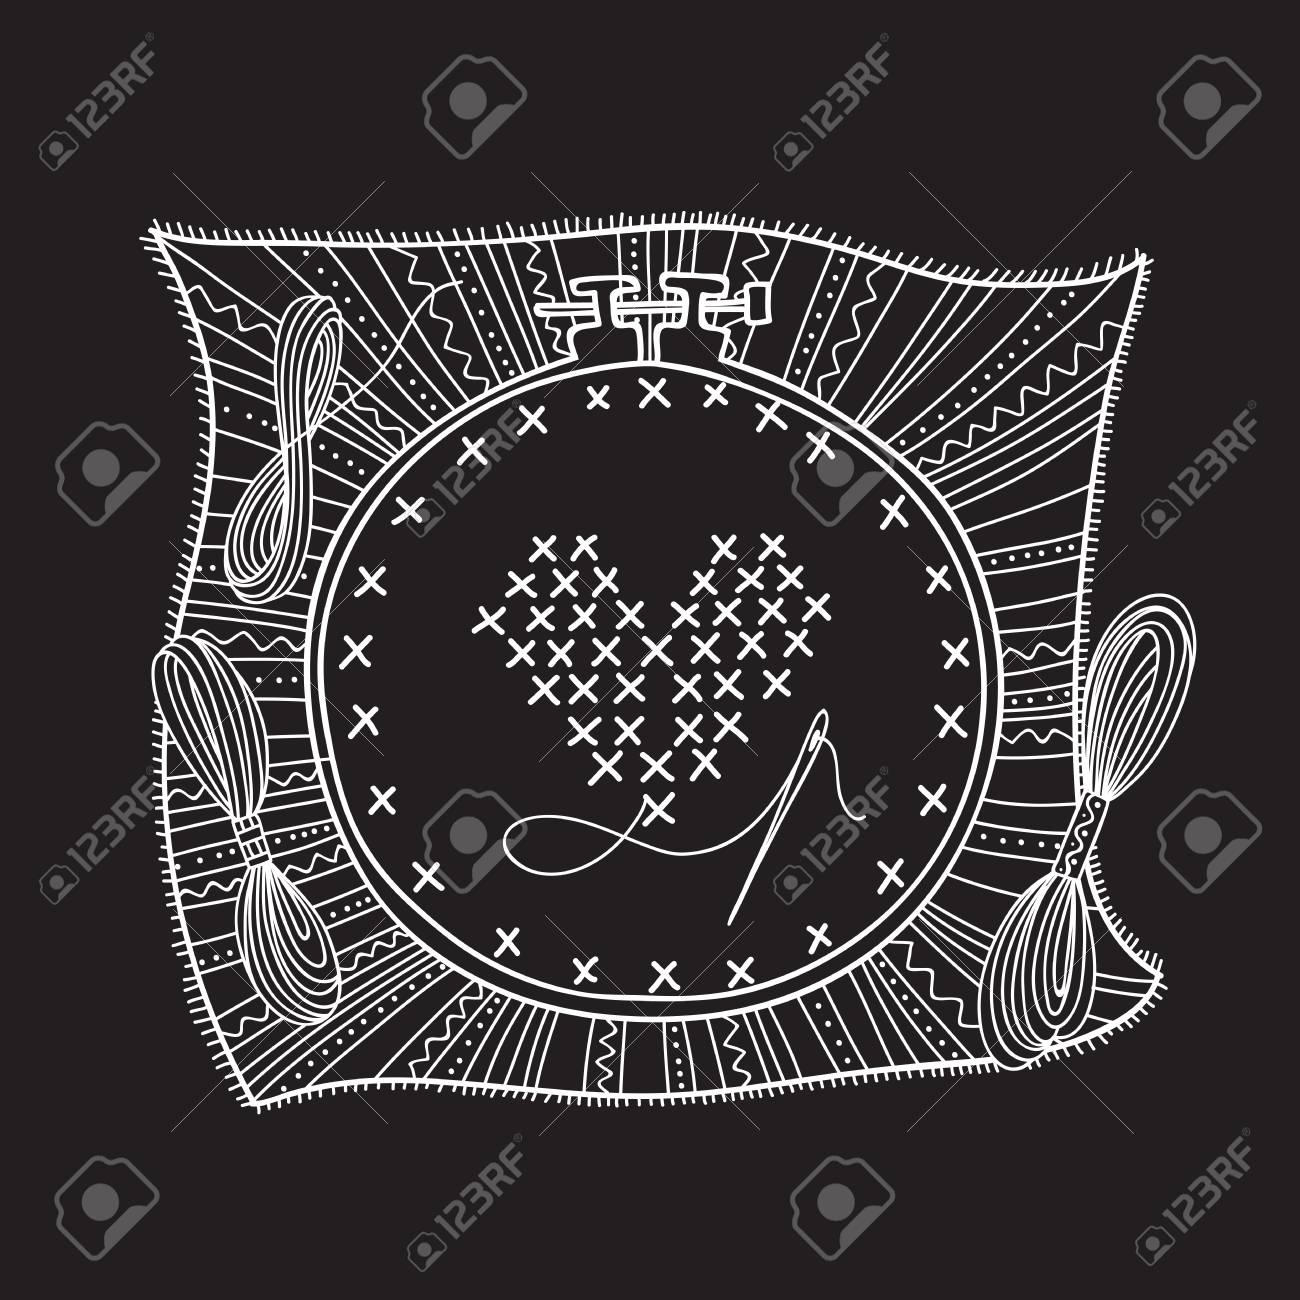 Vector illustration of embroidery with hoop and thread  Can be